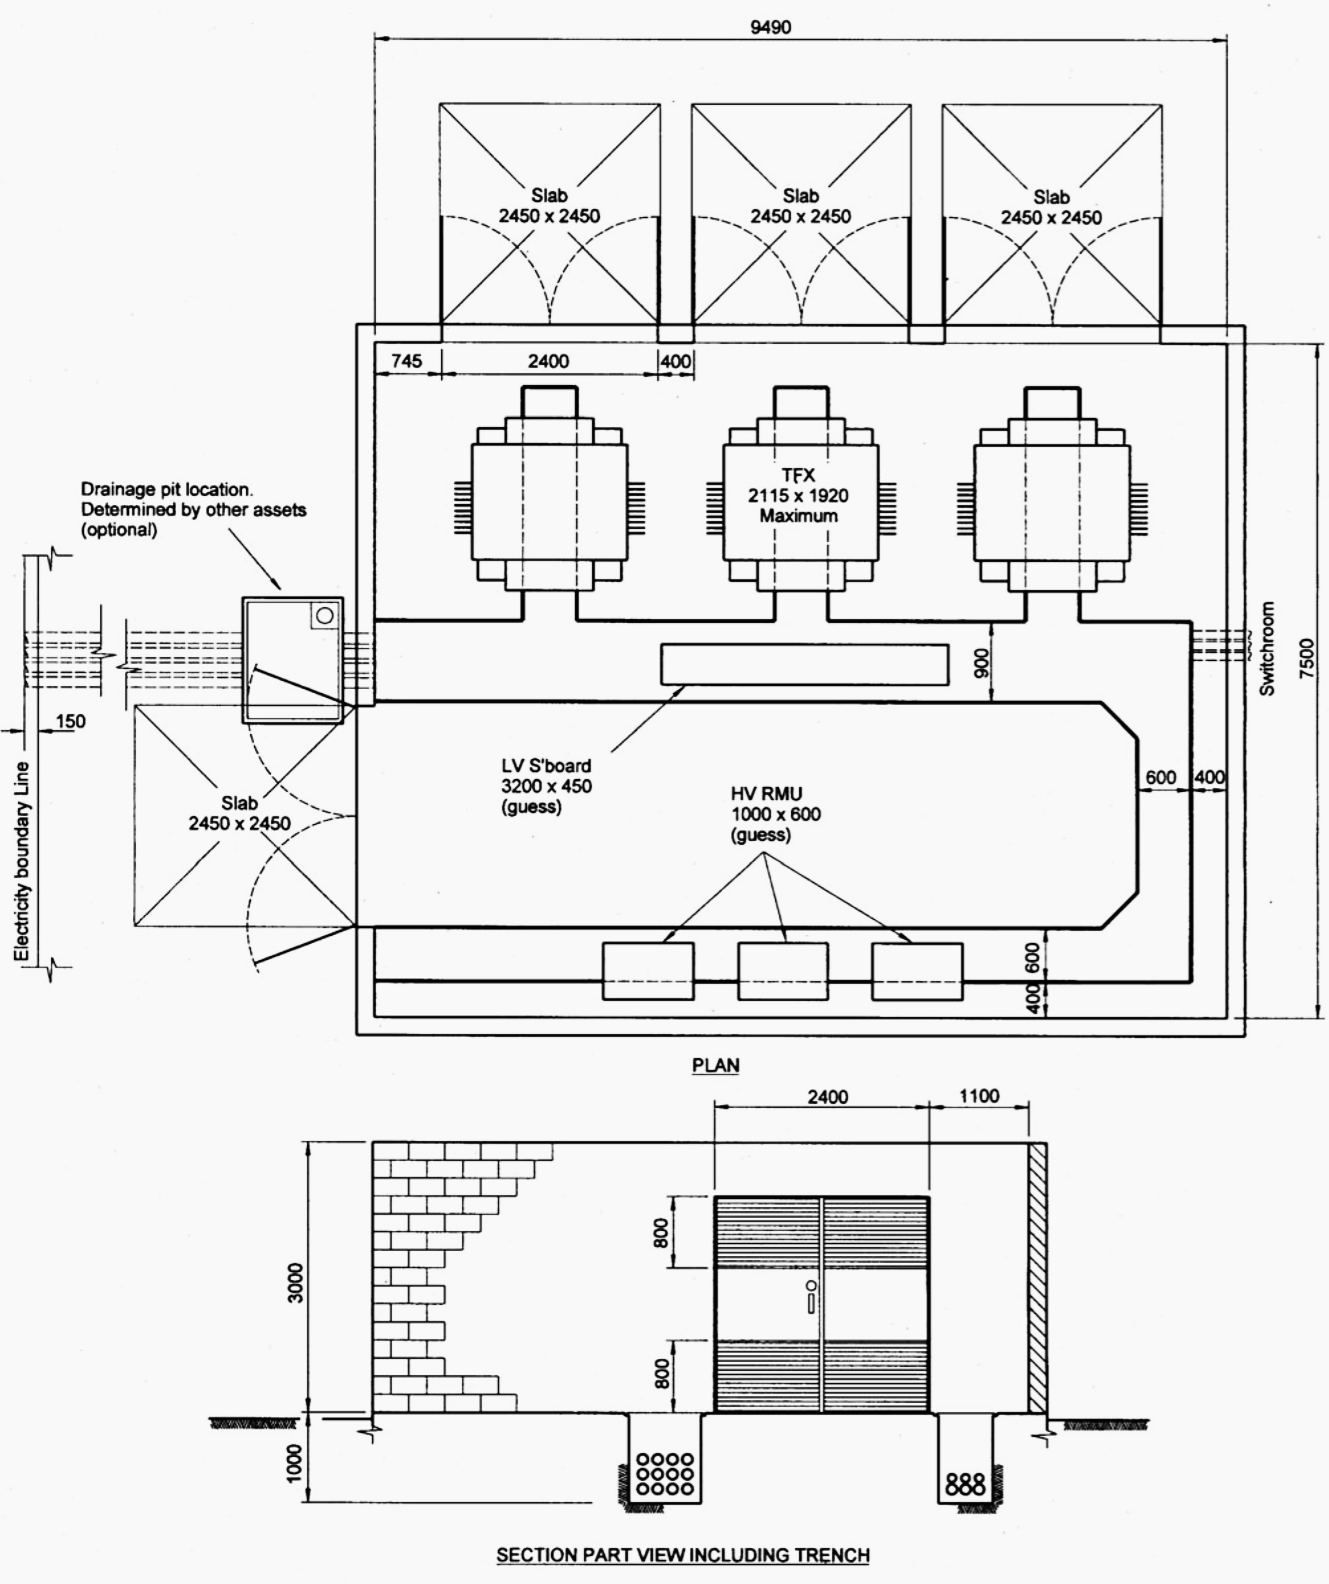 hight resolution of indoor distribution substation layout with 3 transformers emf containment and more than 1 external wall